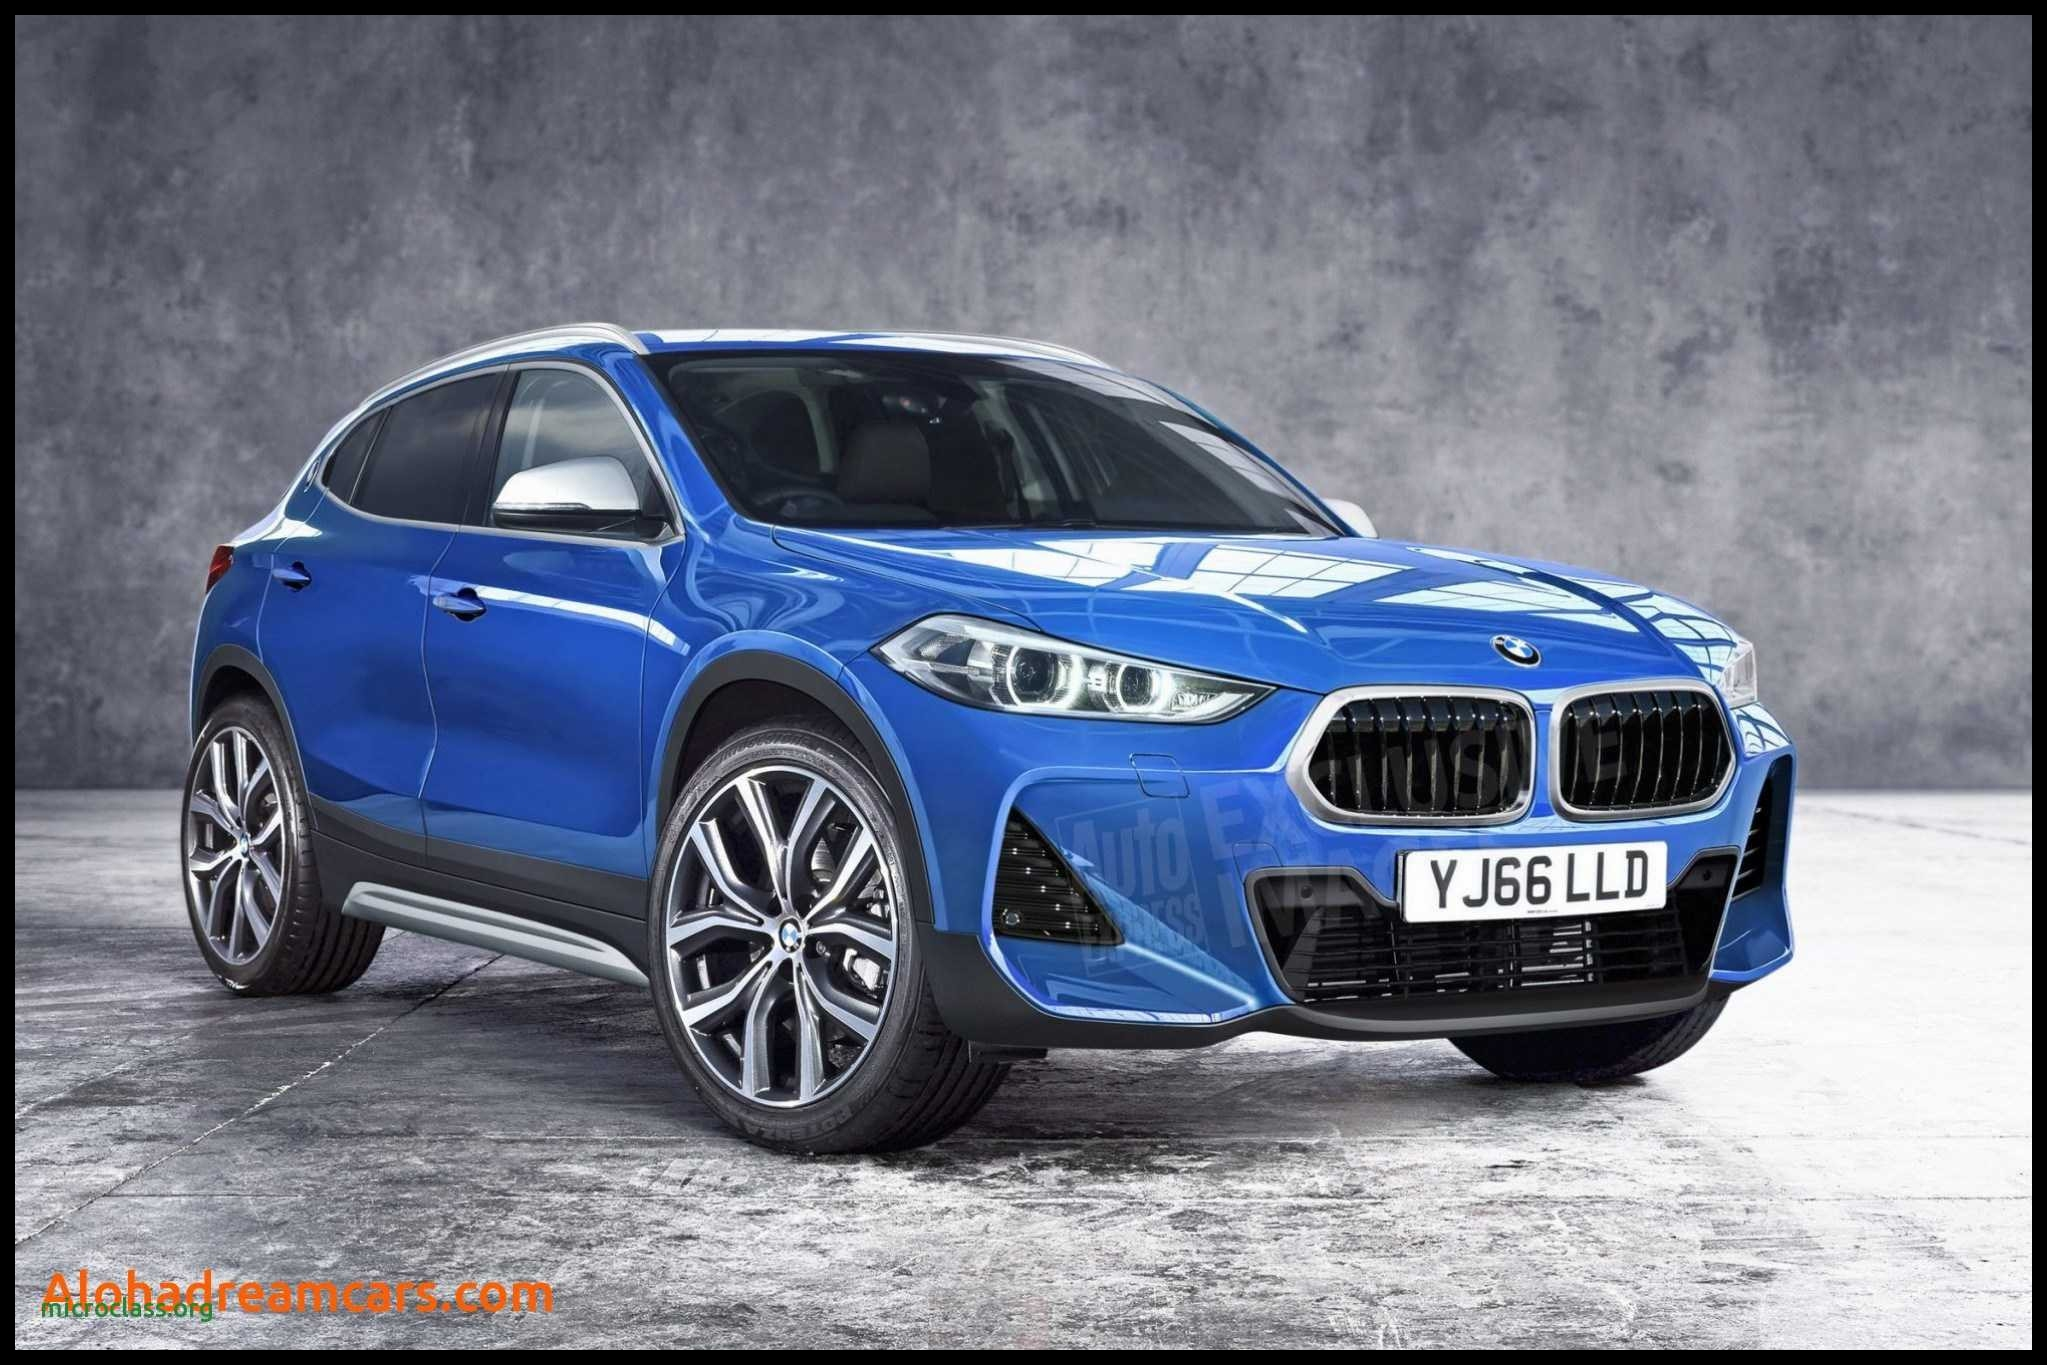 0d Sdrive 2019 Bmw X1 2019 X1 Bmw Specs and Review Bmw Interior New Bmw X1 E84 2